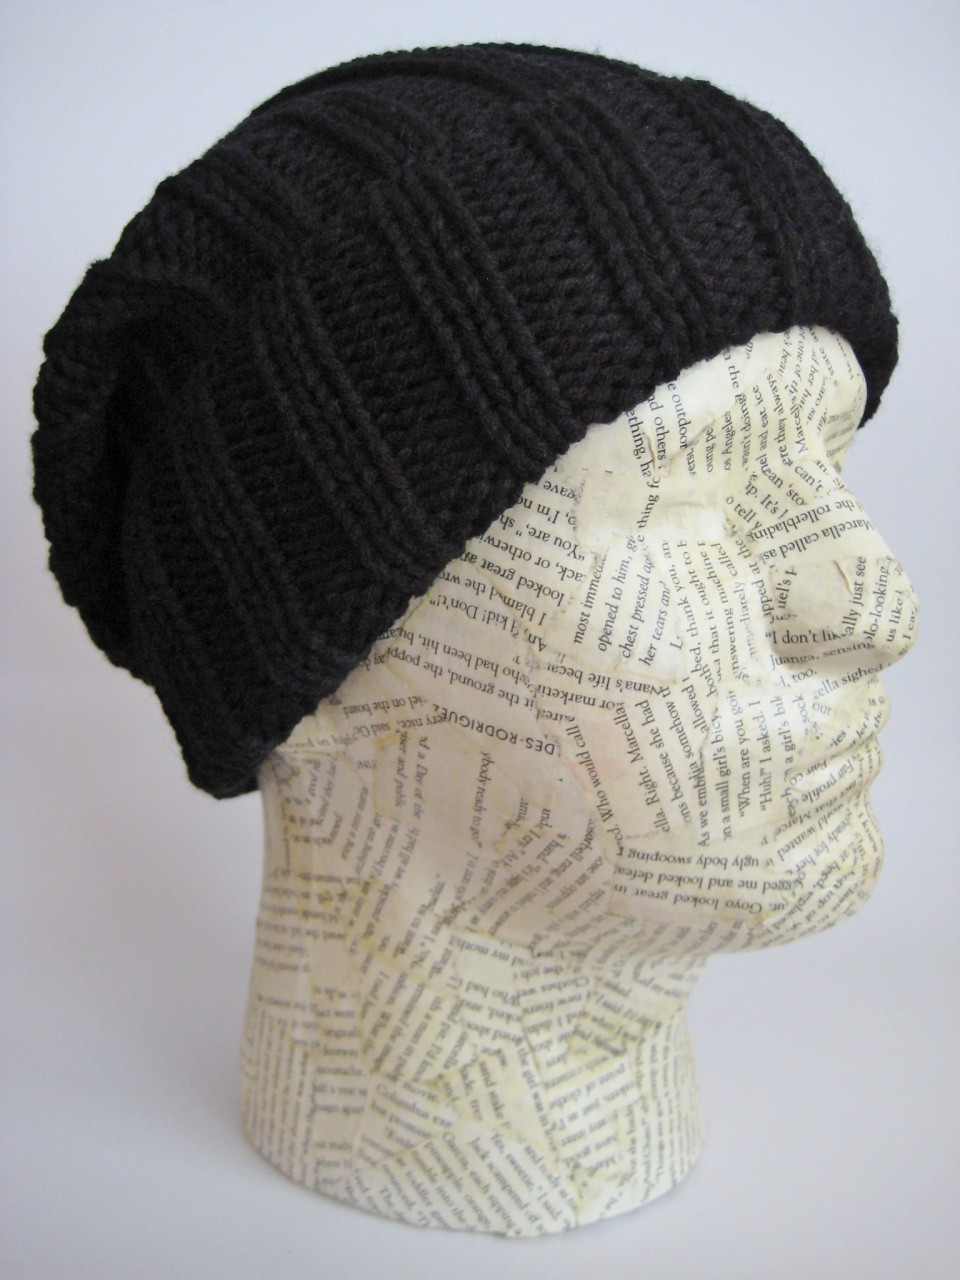 Unisex winter hat. Loading zoom 7a84a8e03bc